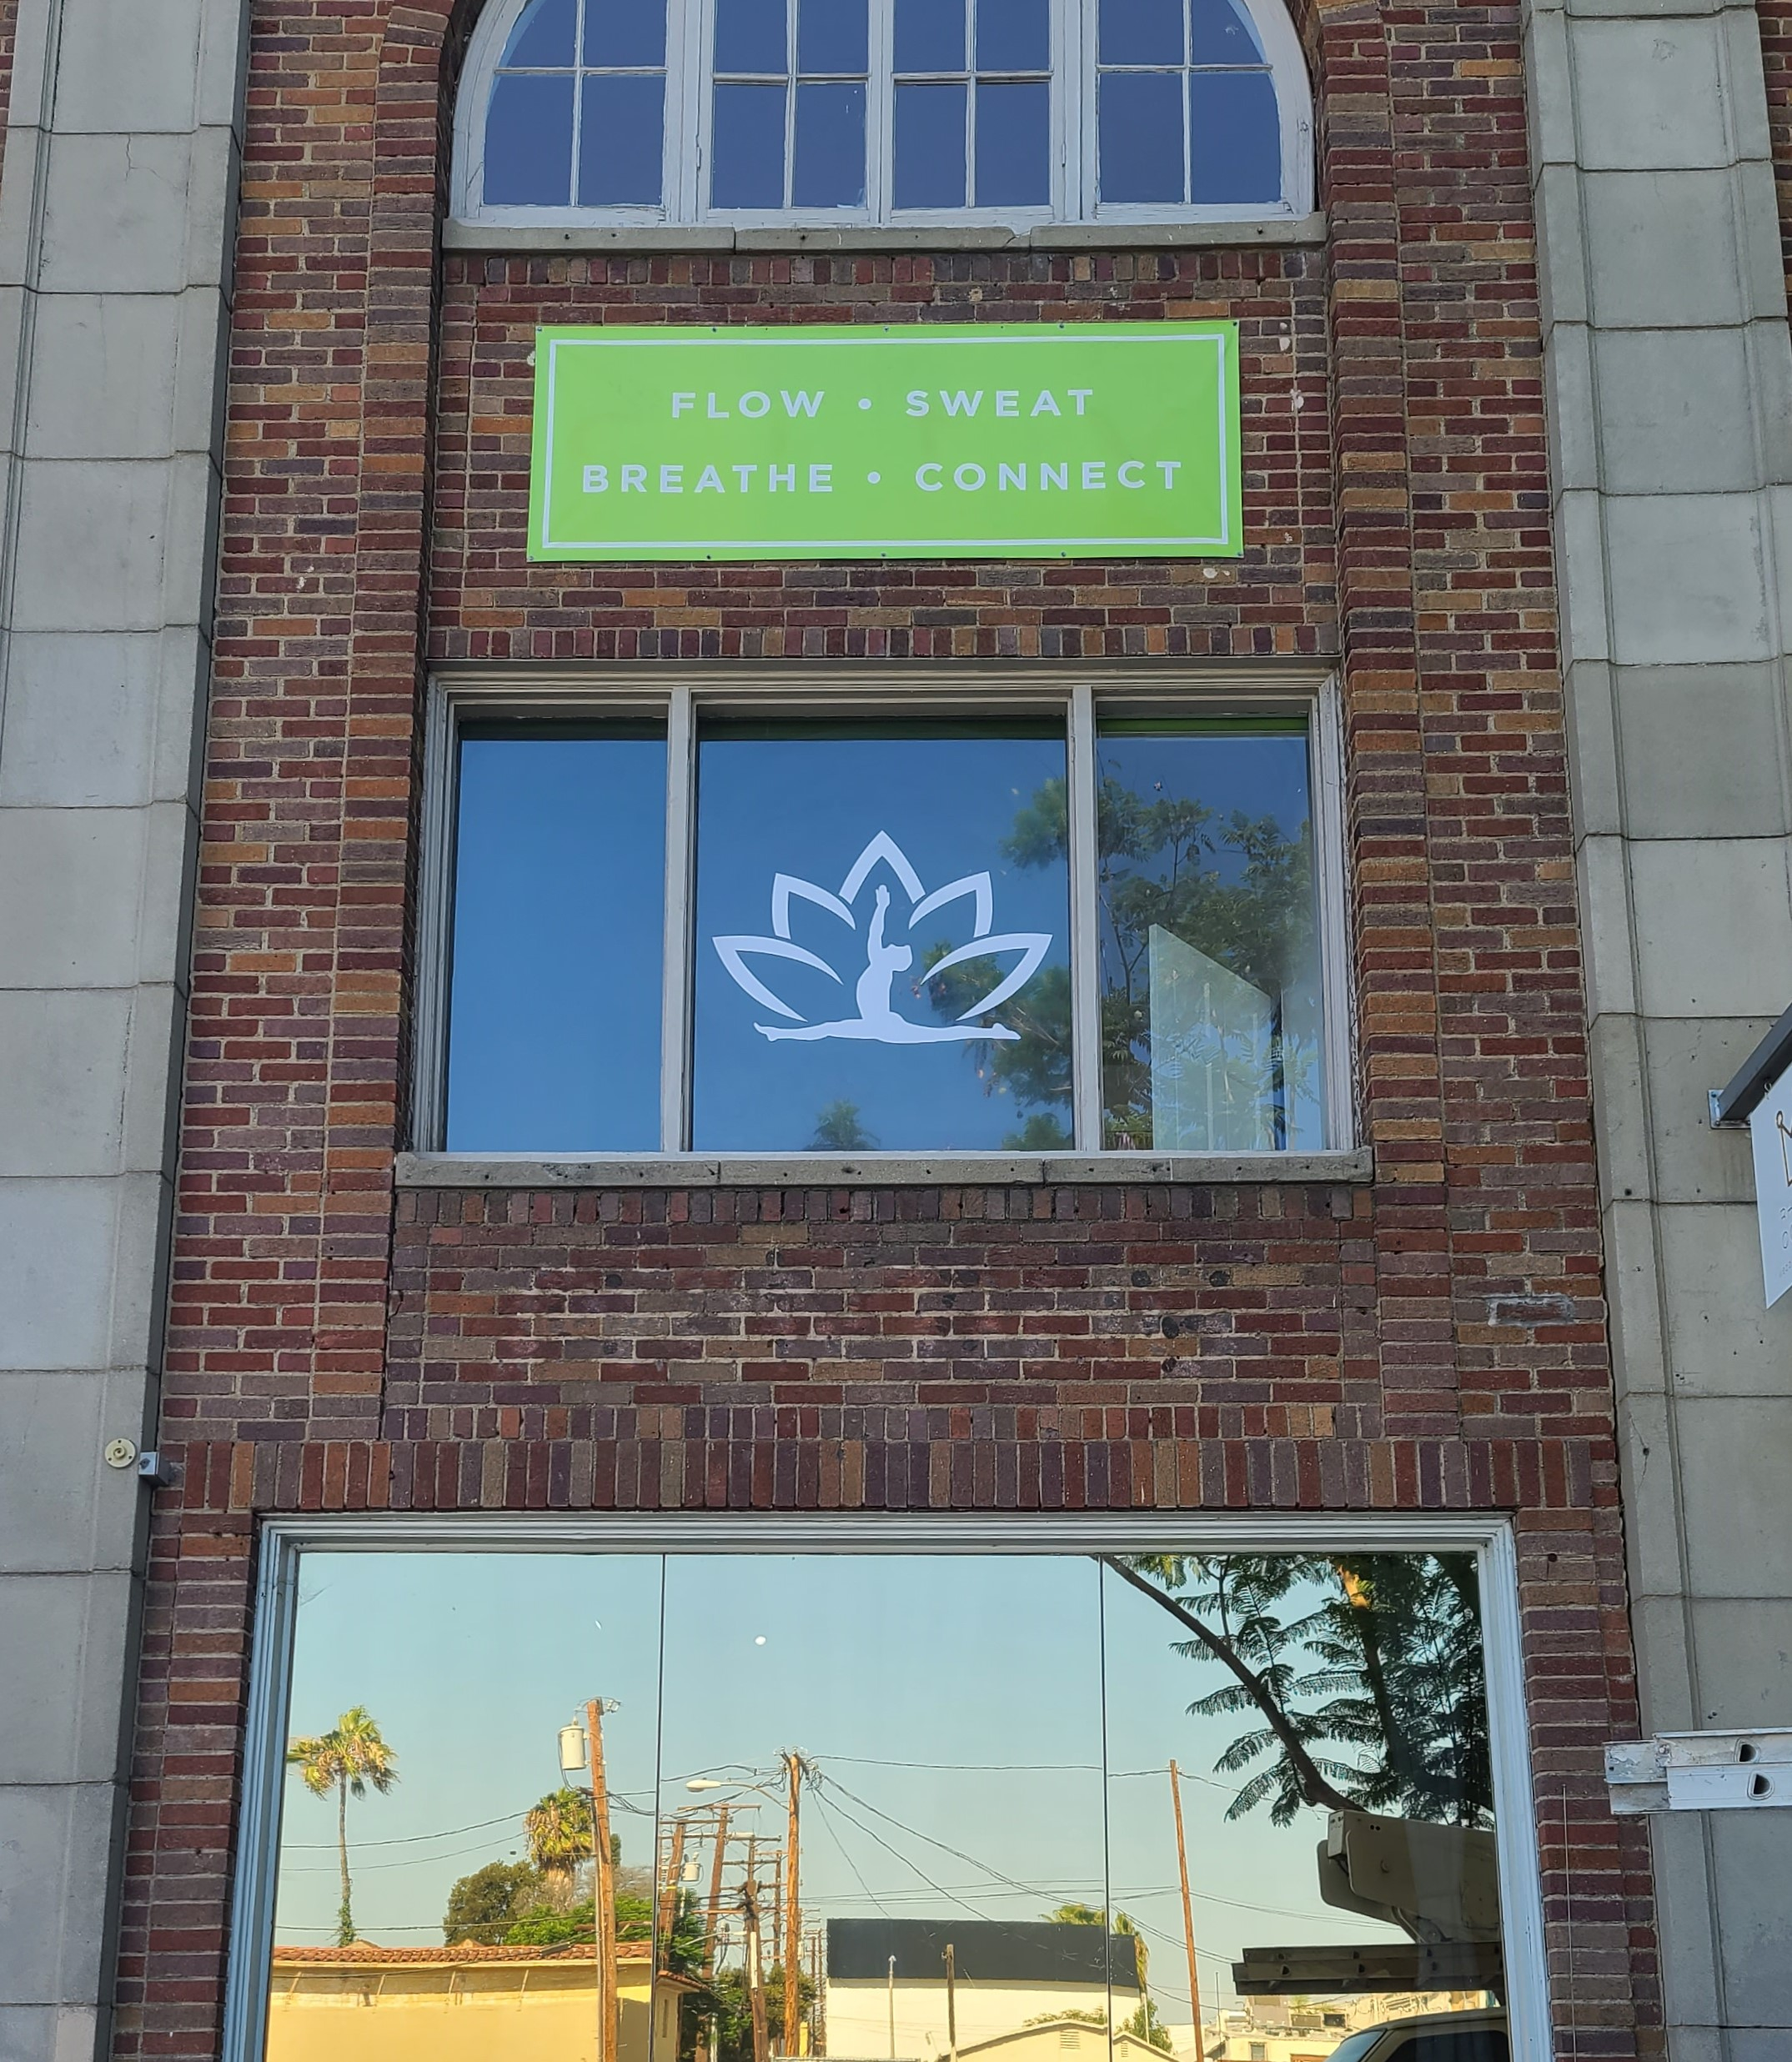 These studio window graphics compliment the other signage we installed for Shiva Yoga's West Hollywood space.